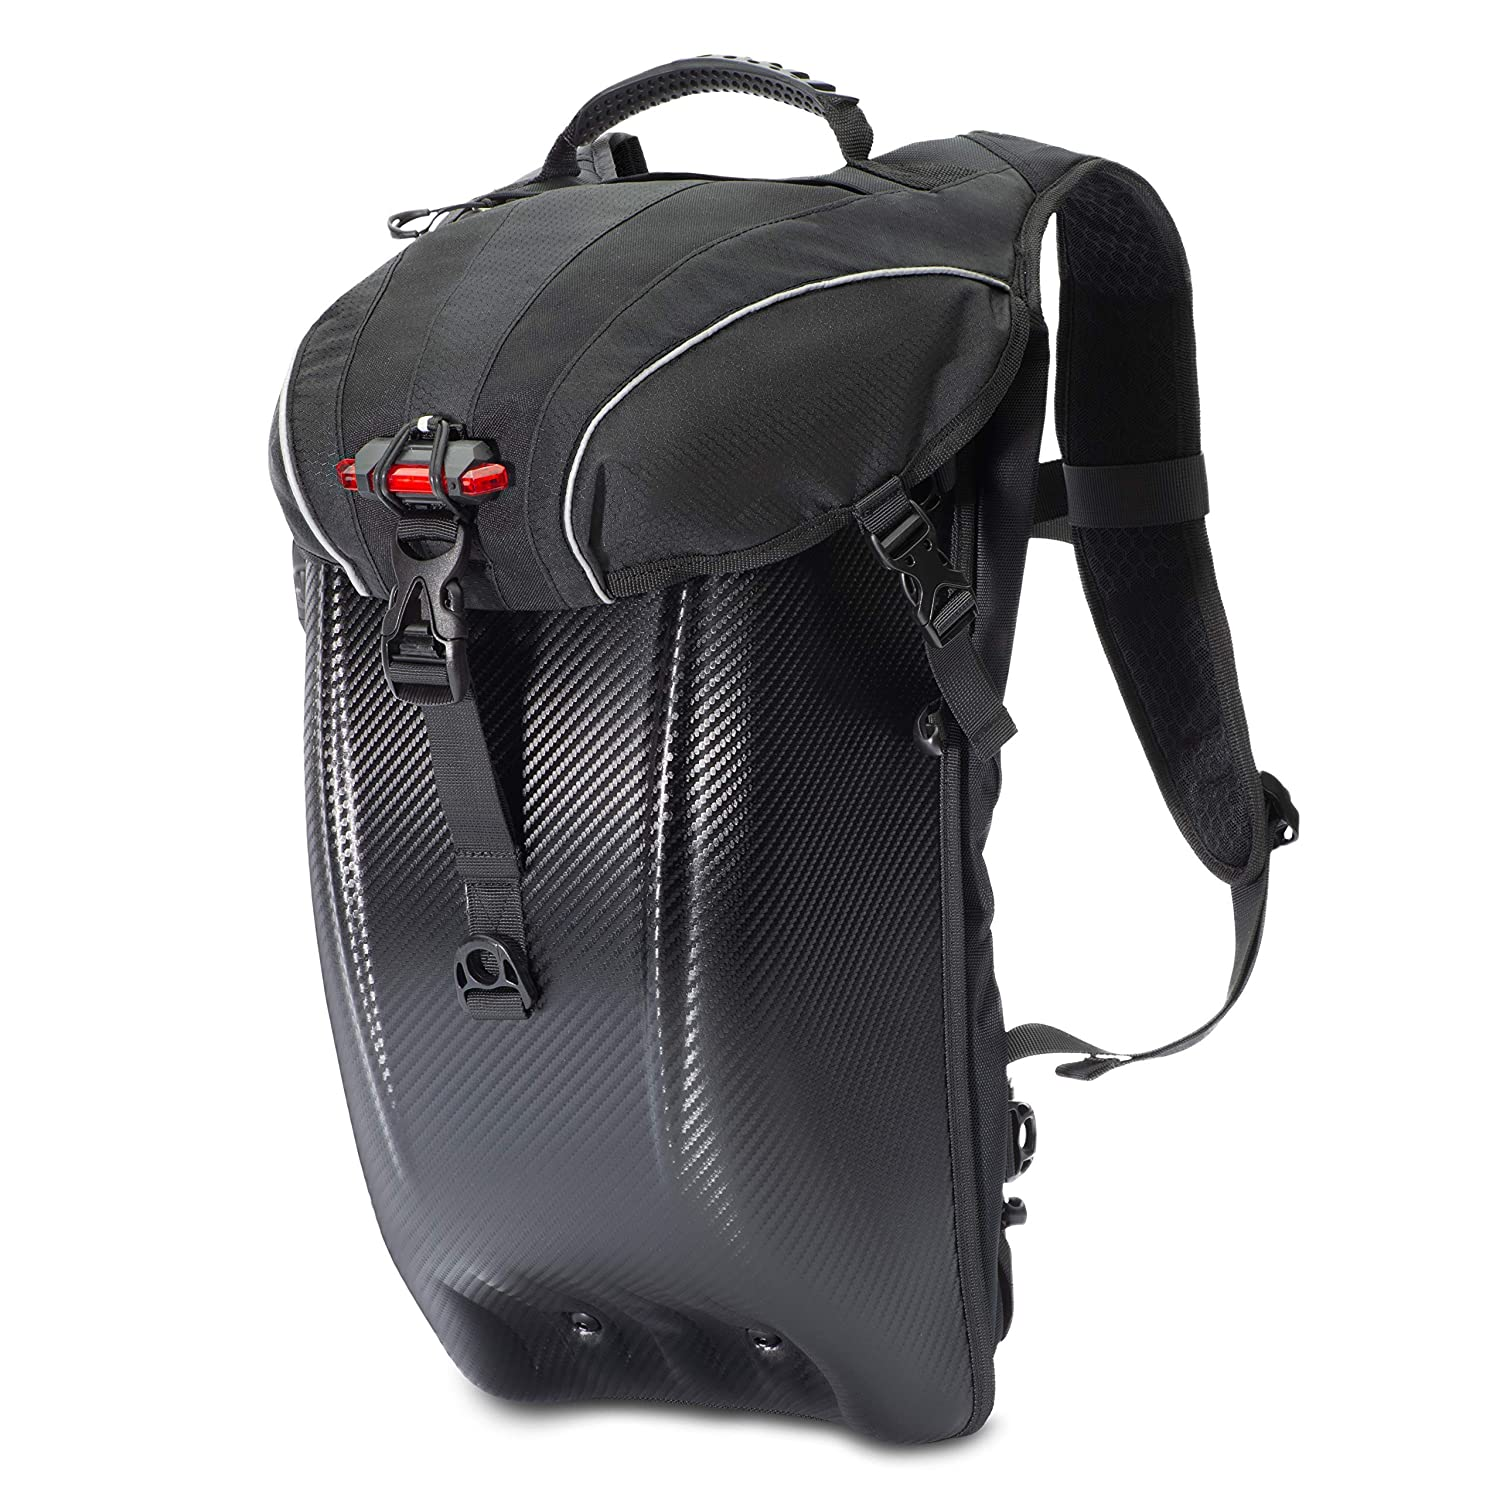 ProtecVie Hiking, Motorcycle [並行輸入品] Backpack   Water Resistant   Multi-Functional     Skiing, Hiking, Biking, Skate Boarding [並行輸入品] B07R3Y6ZM7, CouPole:4cb9acbf --- anime-portal.club